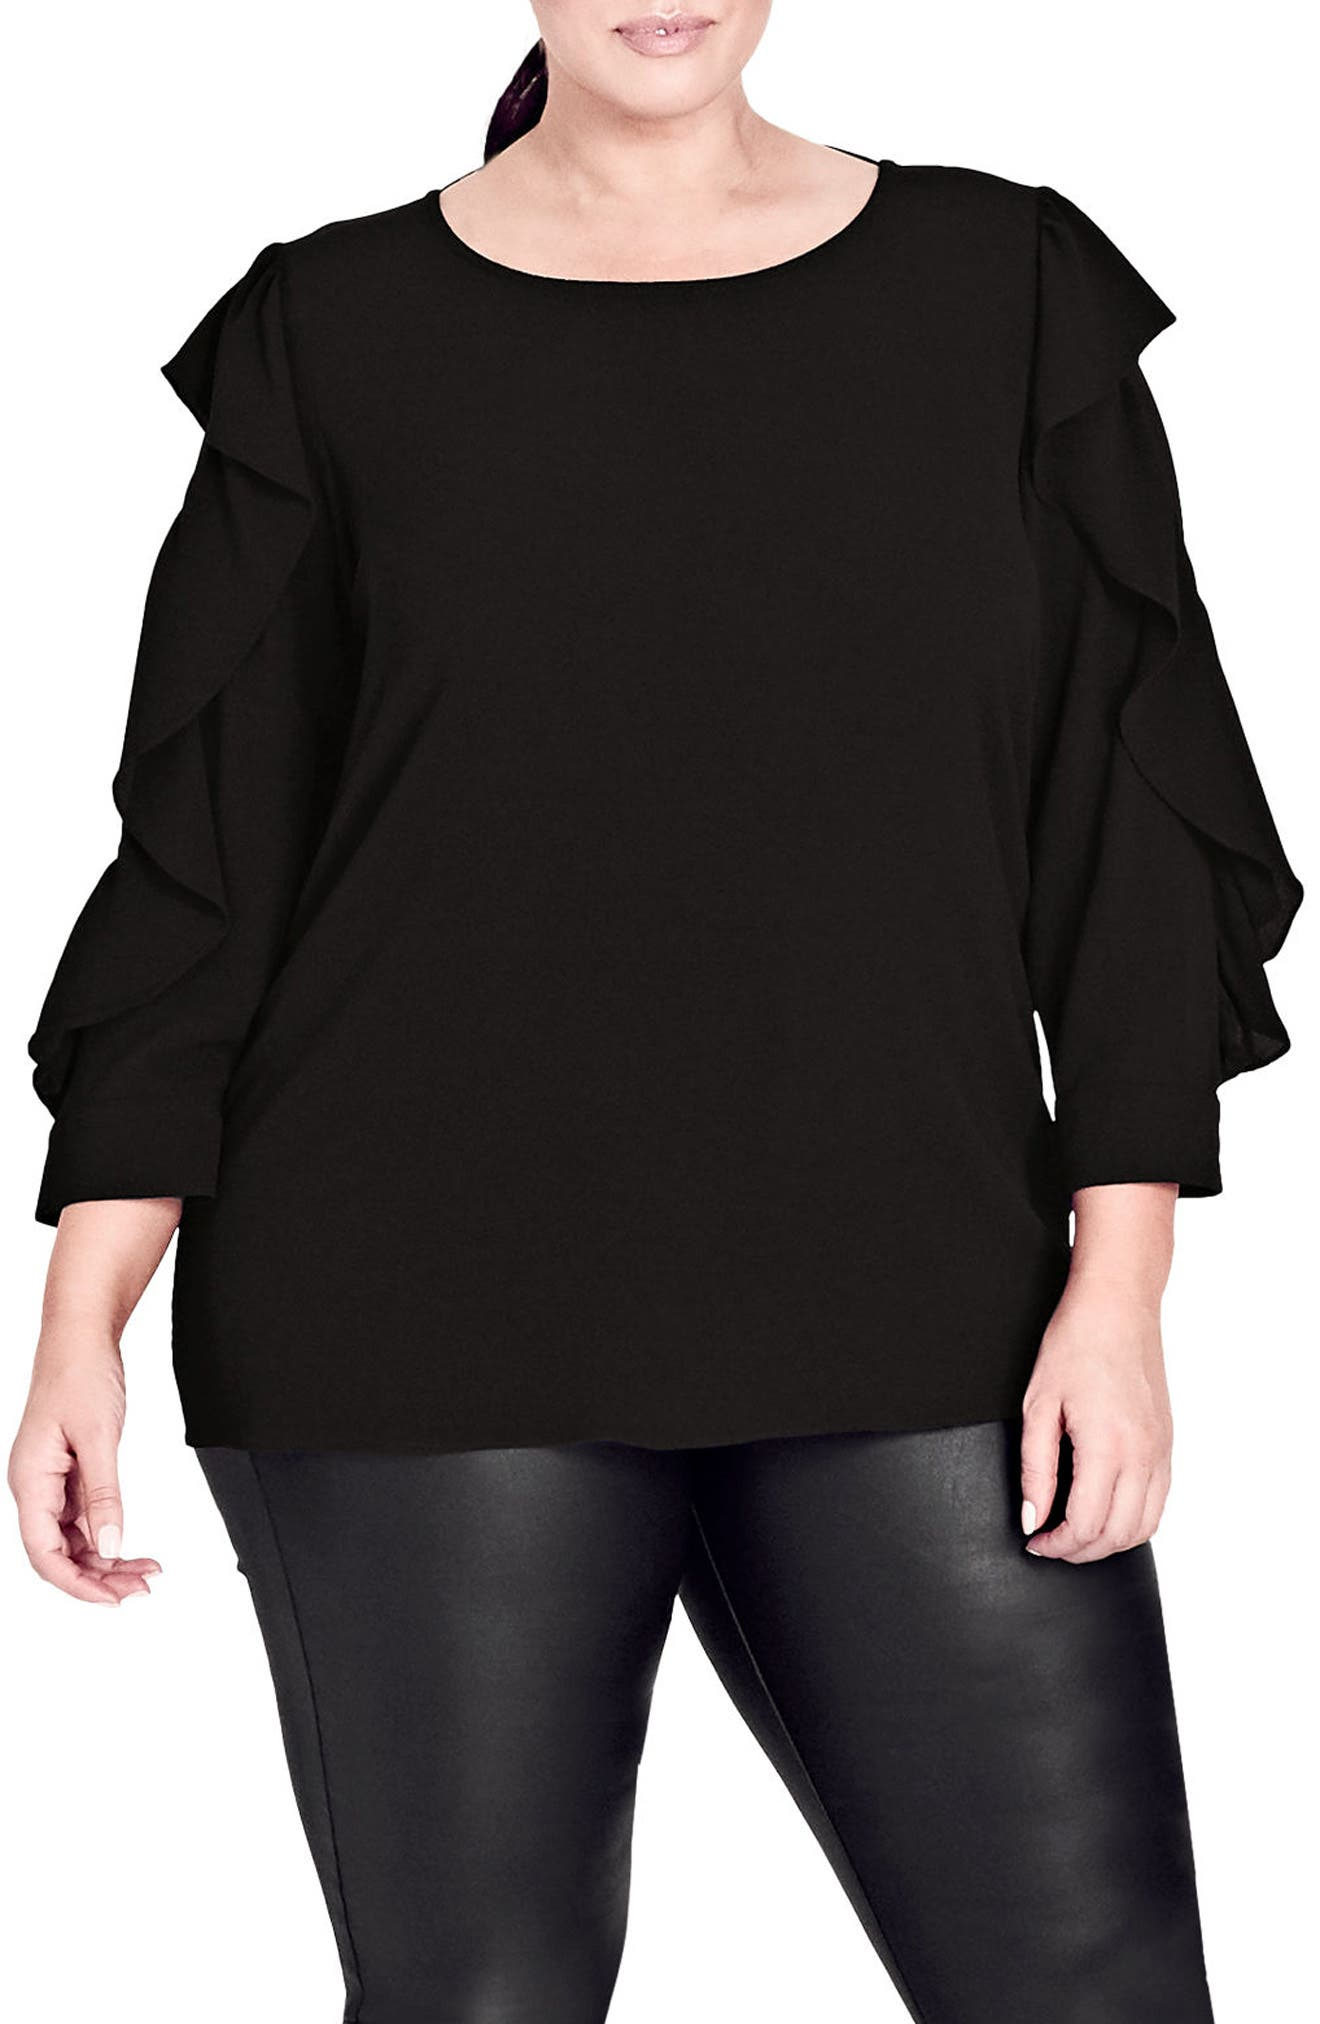 Ruffle Sleeve Button Back Shirt,                         Main,                         color, Black